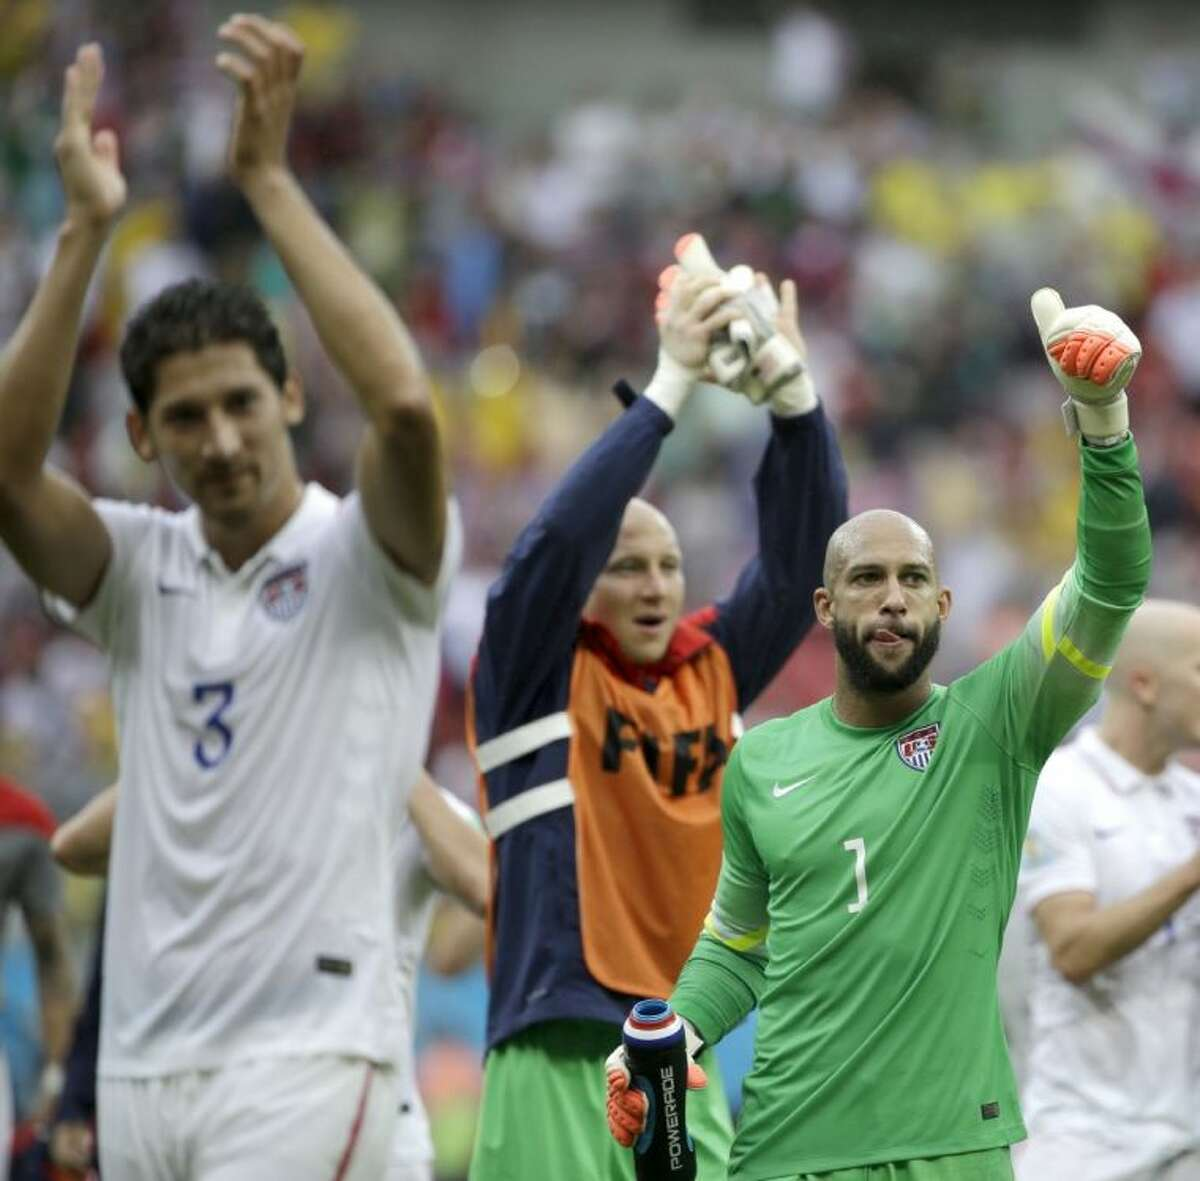 United States goalkeeper Tim Howard (1) and his teammates celebrate after qualifying for the second round of the World Cup following their 1-0 loss to Germany.